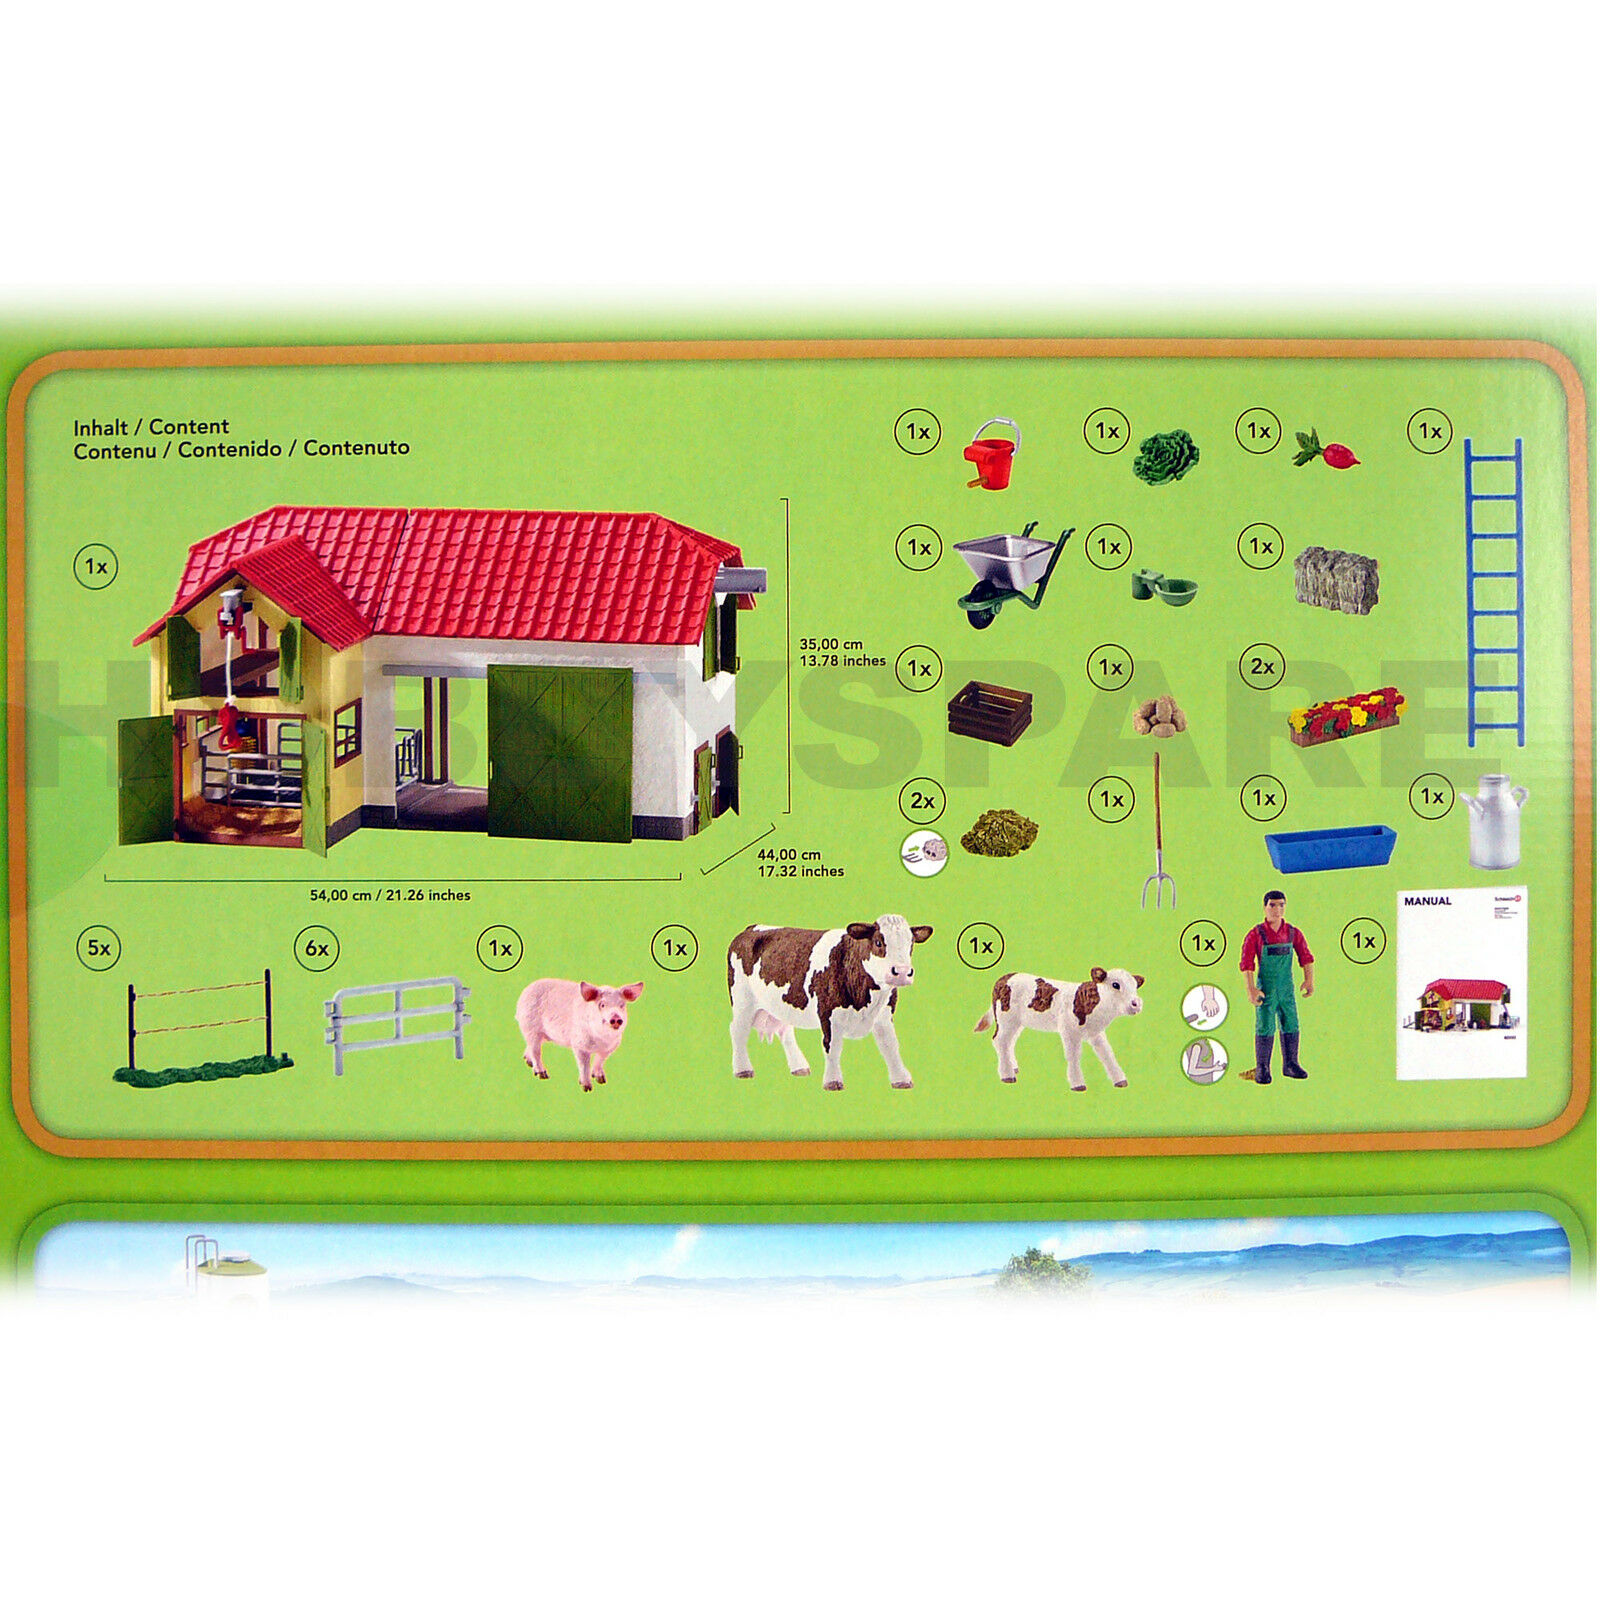 NEW SCHLEICH LARGE FARM HOUSE BARN with with with ANIMALS & ACCESSORIES FARM WORLD 42333 27827f